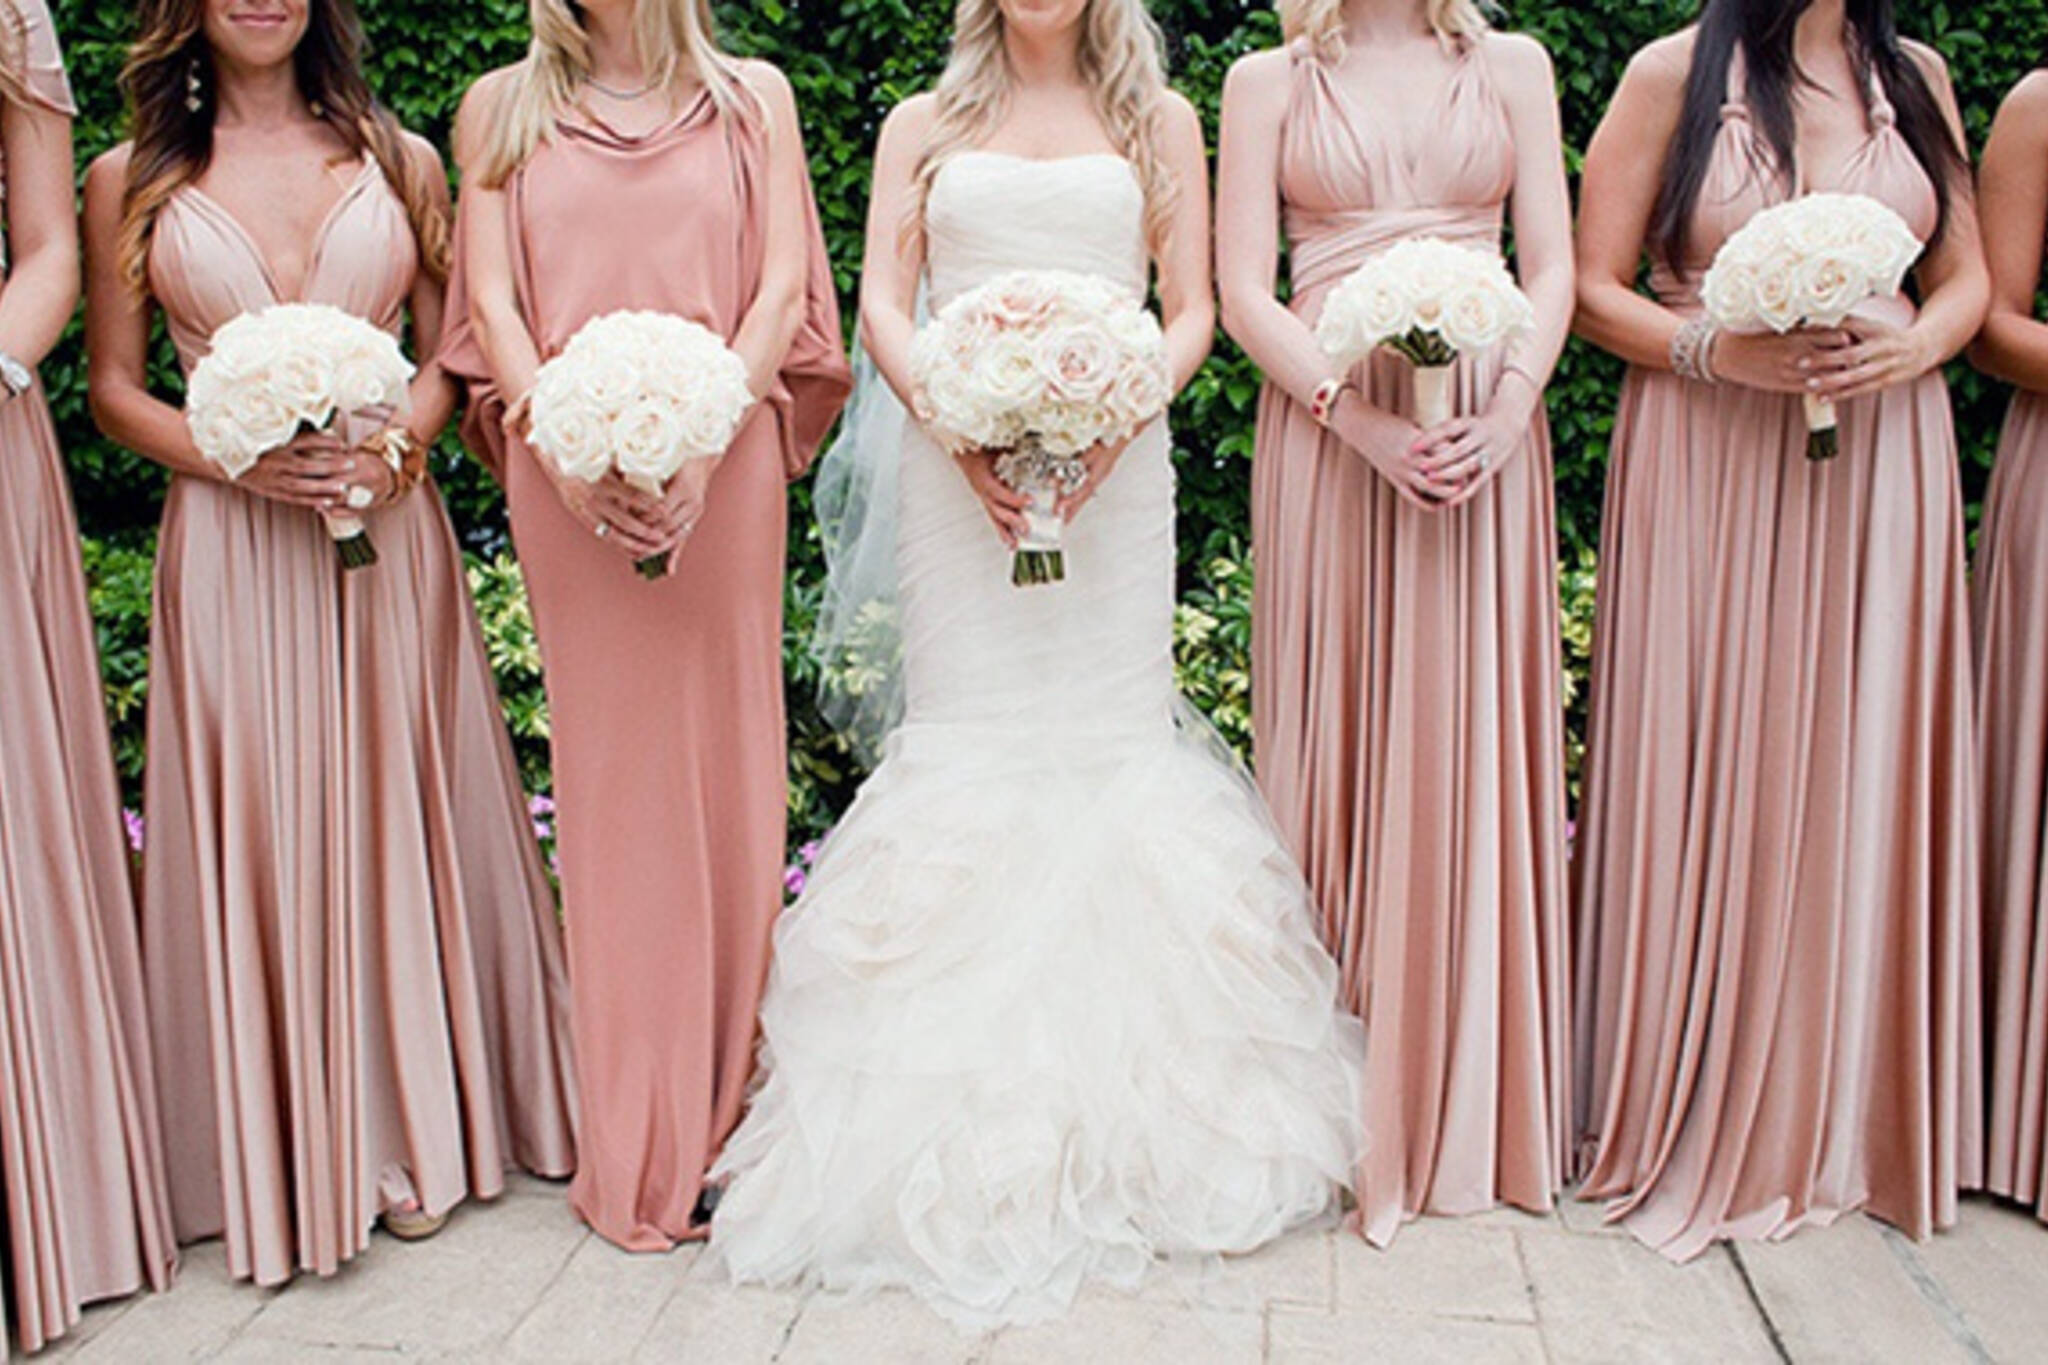 Reviews on Bridesmaid Dresses in Minneapolis, MN - Bella Bridesmaids, Che Bella Boutique, Flutter Bridal Boutique, a & bé bridal shop, The Bridal Store, Bridal Aisle Boutique, Brides of France, Raffiné Bridal and Formal Wear, Angelique's Bridal,.